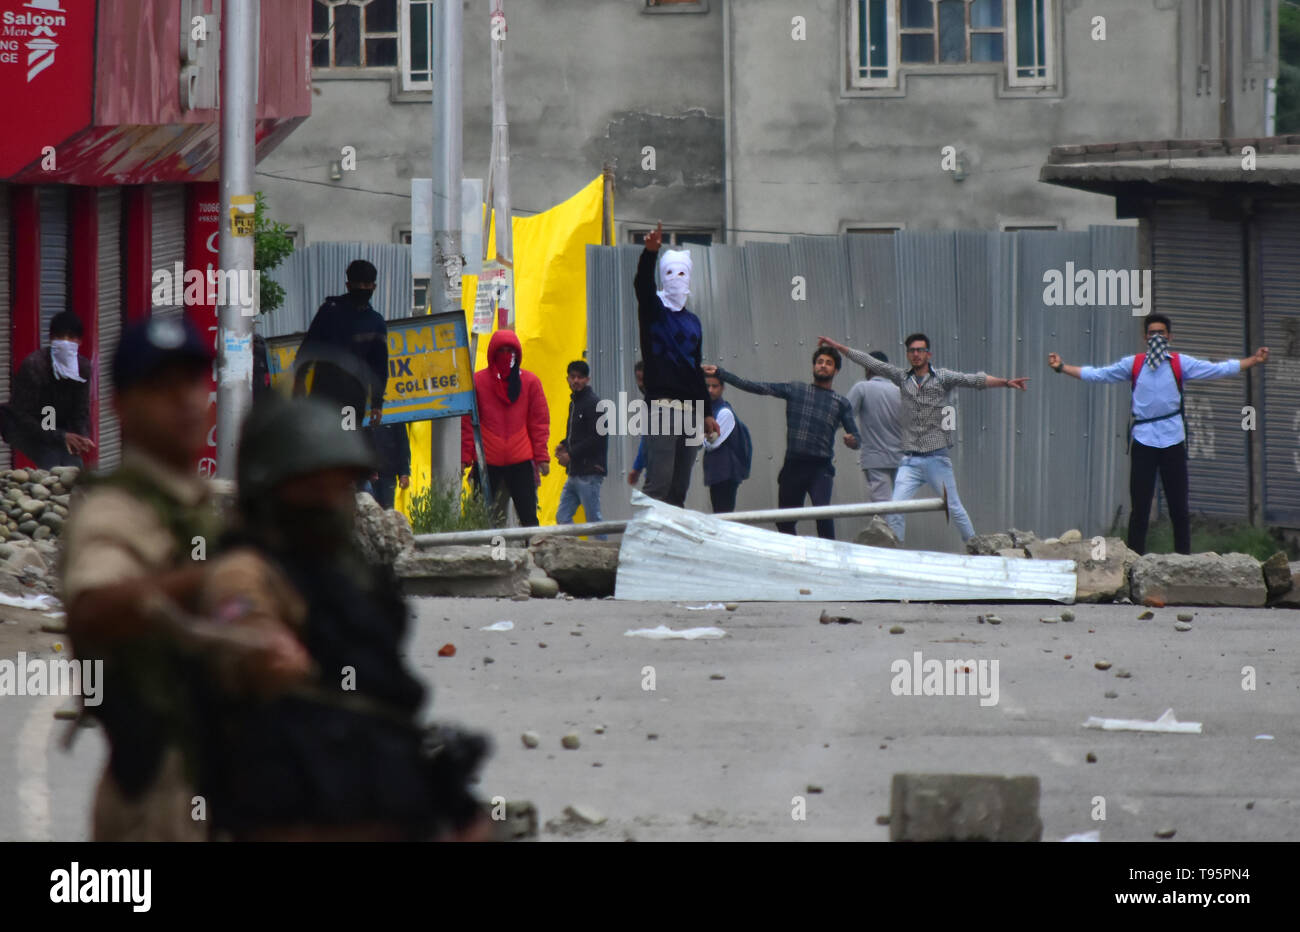 May 16, 2019, Pulwama, Kashmir, India: Protesters clash with Indian government forces after the funeral procession of rebel commander Naseer Pandith in the Karimabad area of the Pulwama district in Indian Administered Kashmir. The militant commander was killed in a pre-dawn confrontation between Indian forces and rebels in the Dalipora area of Pulwama during which two other rebels, a soldier, and a civilian were also killed. After the funeral hundreds of mourners clashed with Indian forces in many sites in Pulwama Credit: Muzamil Mattoo/IMAGESLIVE/ZUMA Wire/Alamy Live News - Stock Image